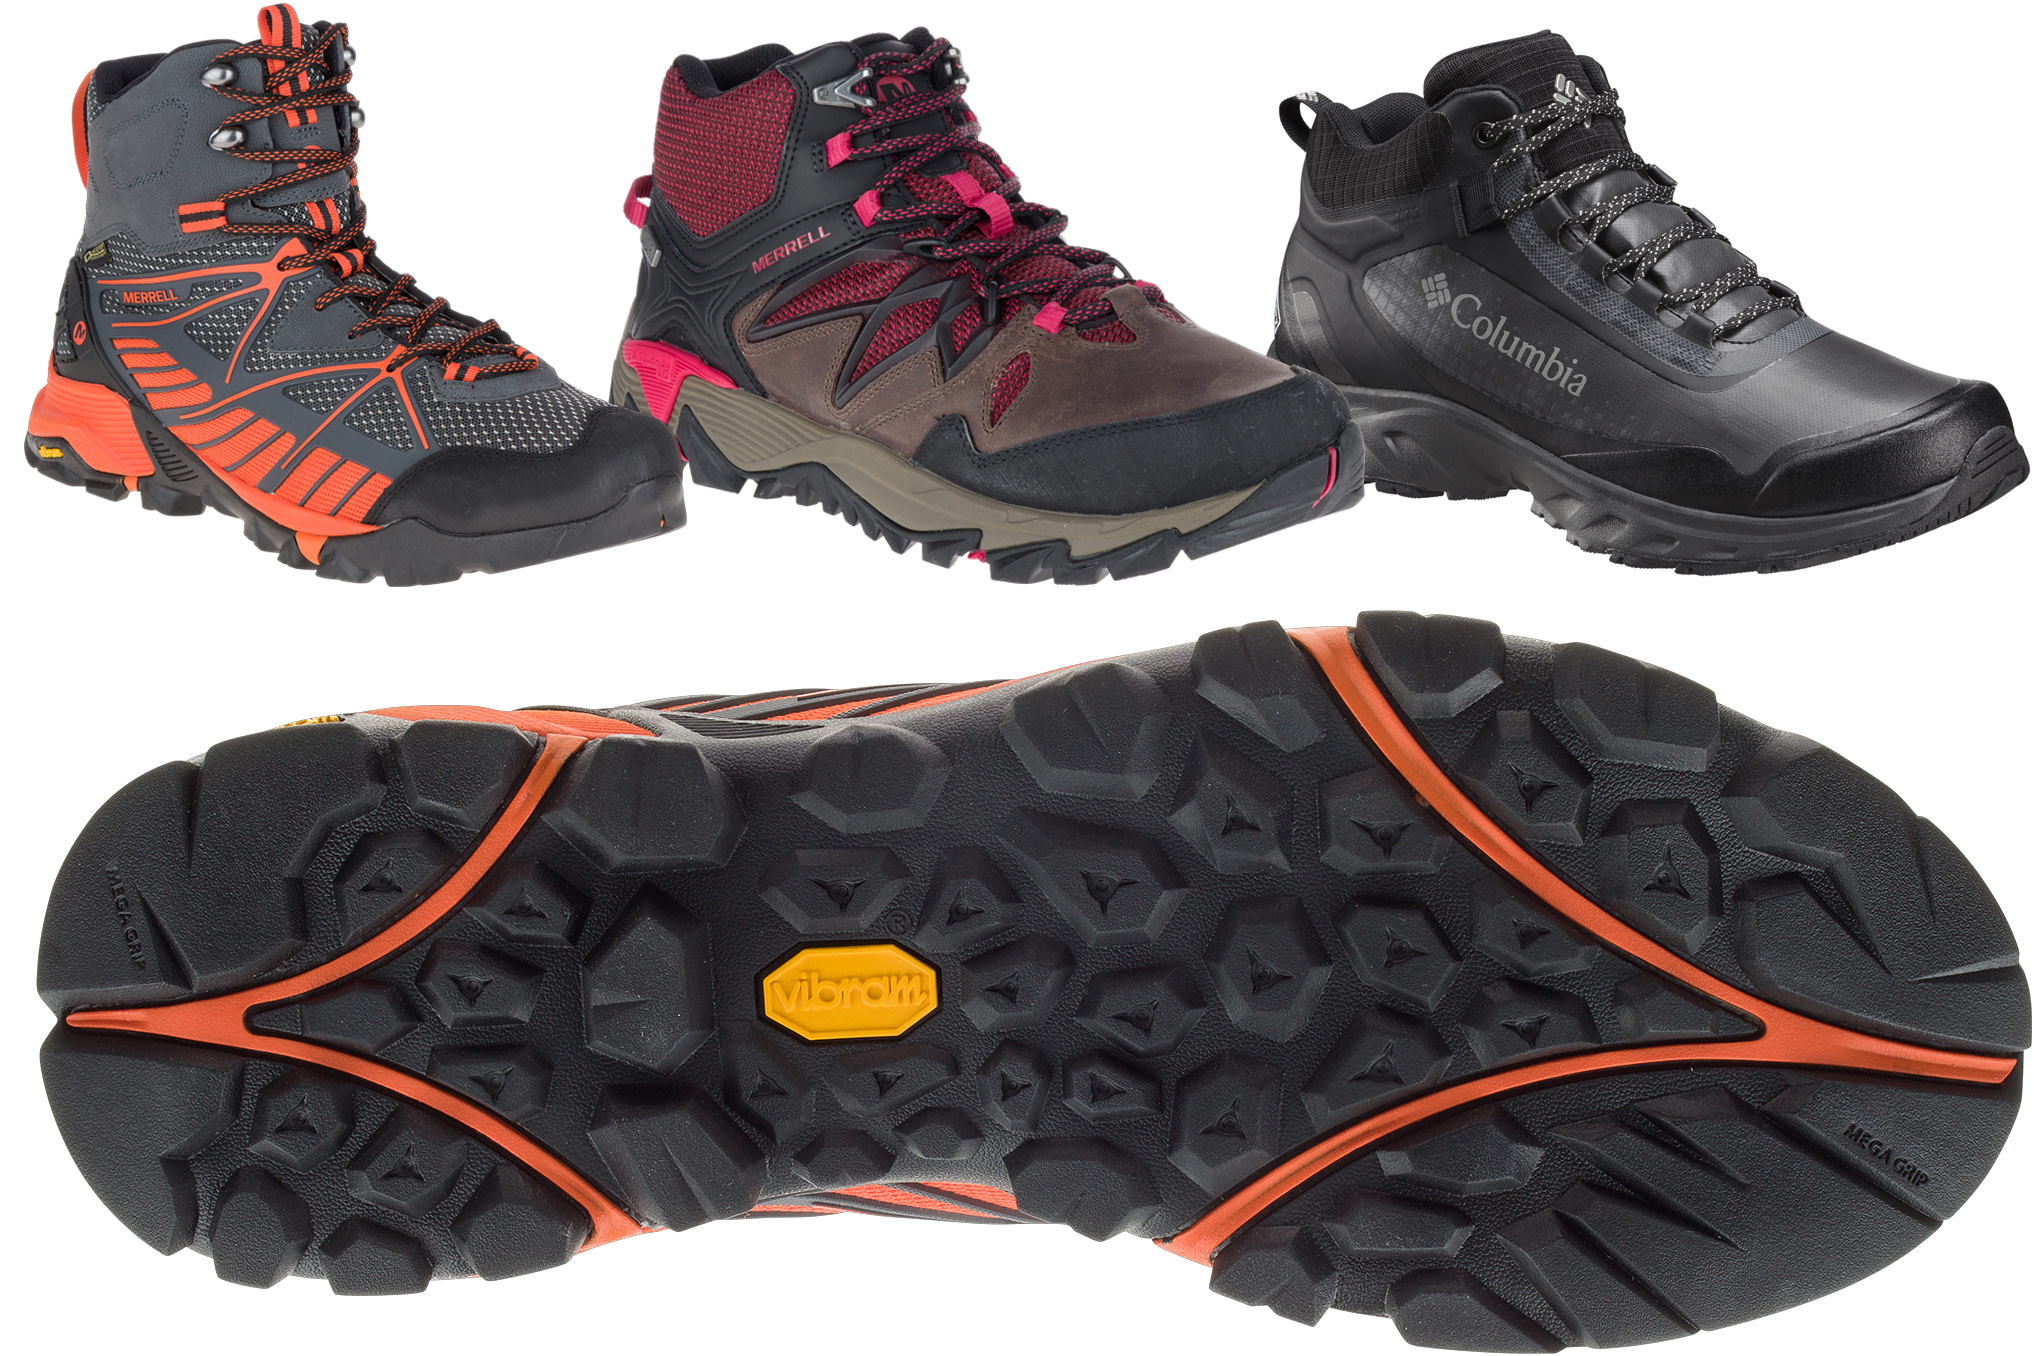 best sneakers 9b305 b025c Boot Bargains: Save an Extra 25% on Several Hikers From REI ...